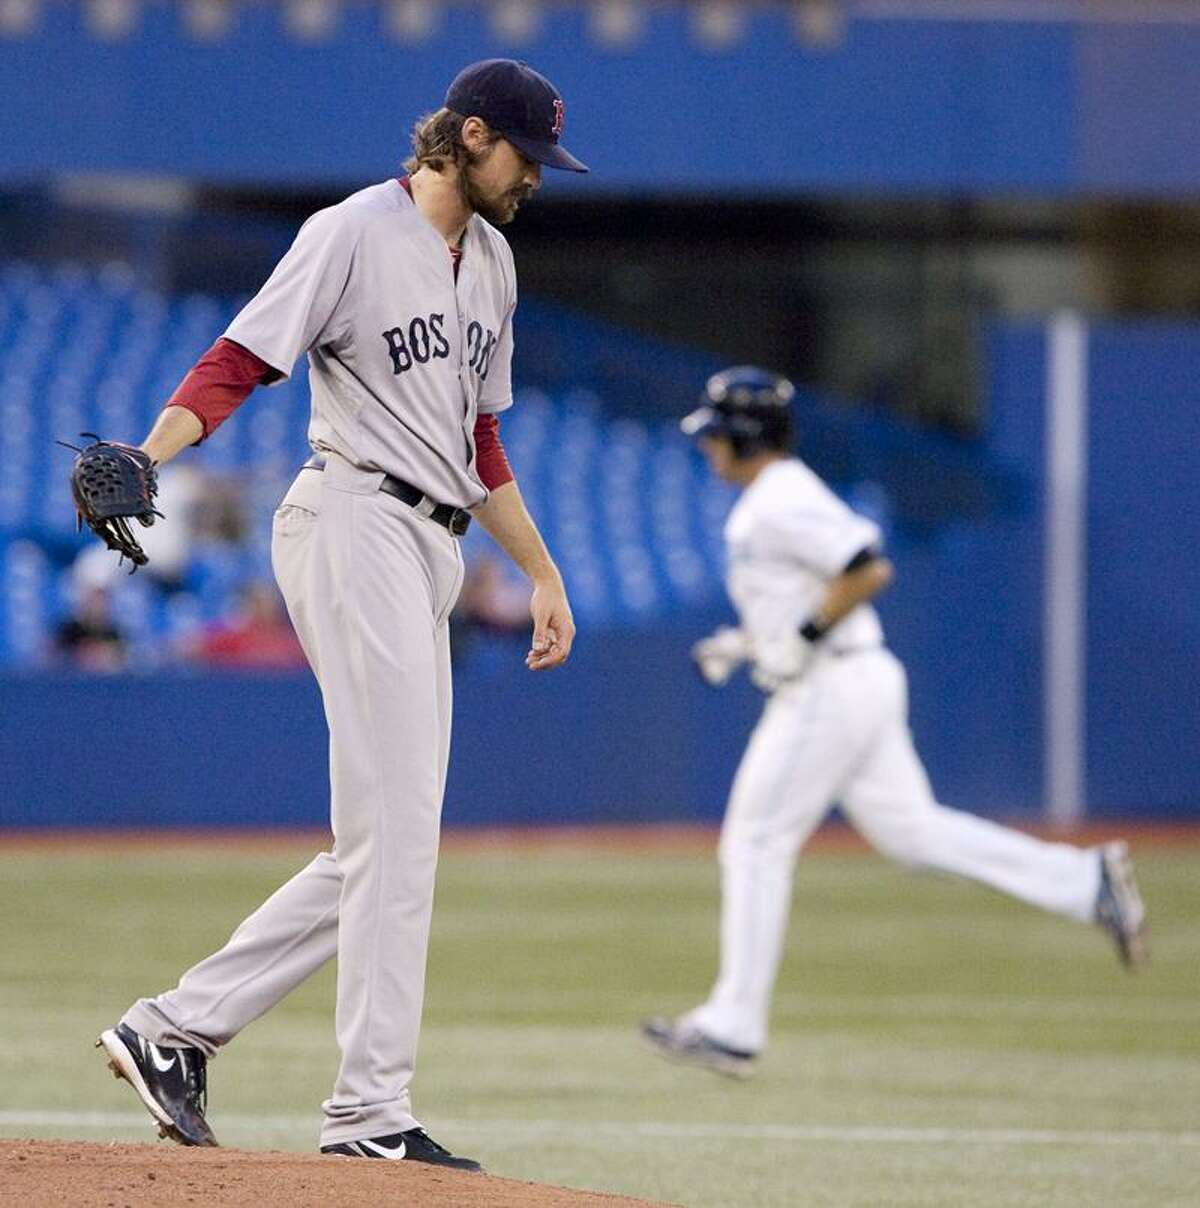 Boston Red Sox starting pitcher Andrew Miller, left, stands on the mound as Toronto Blue Jays' J.P. Arencibia rounds the bases following a three-run home run in the second inning MLB game baseball action in Toronto, Thursday, Sept. 8, 2011. (AP Photo/The Canadian Press, Darren Calabrese)